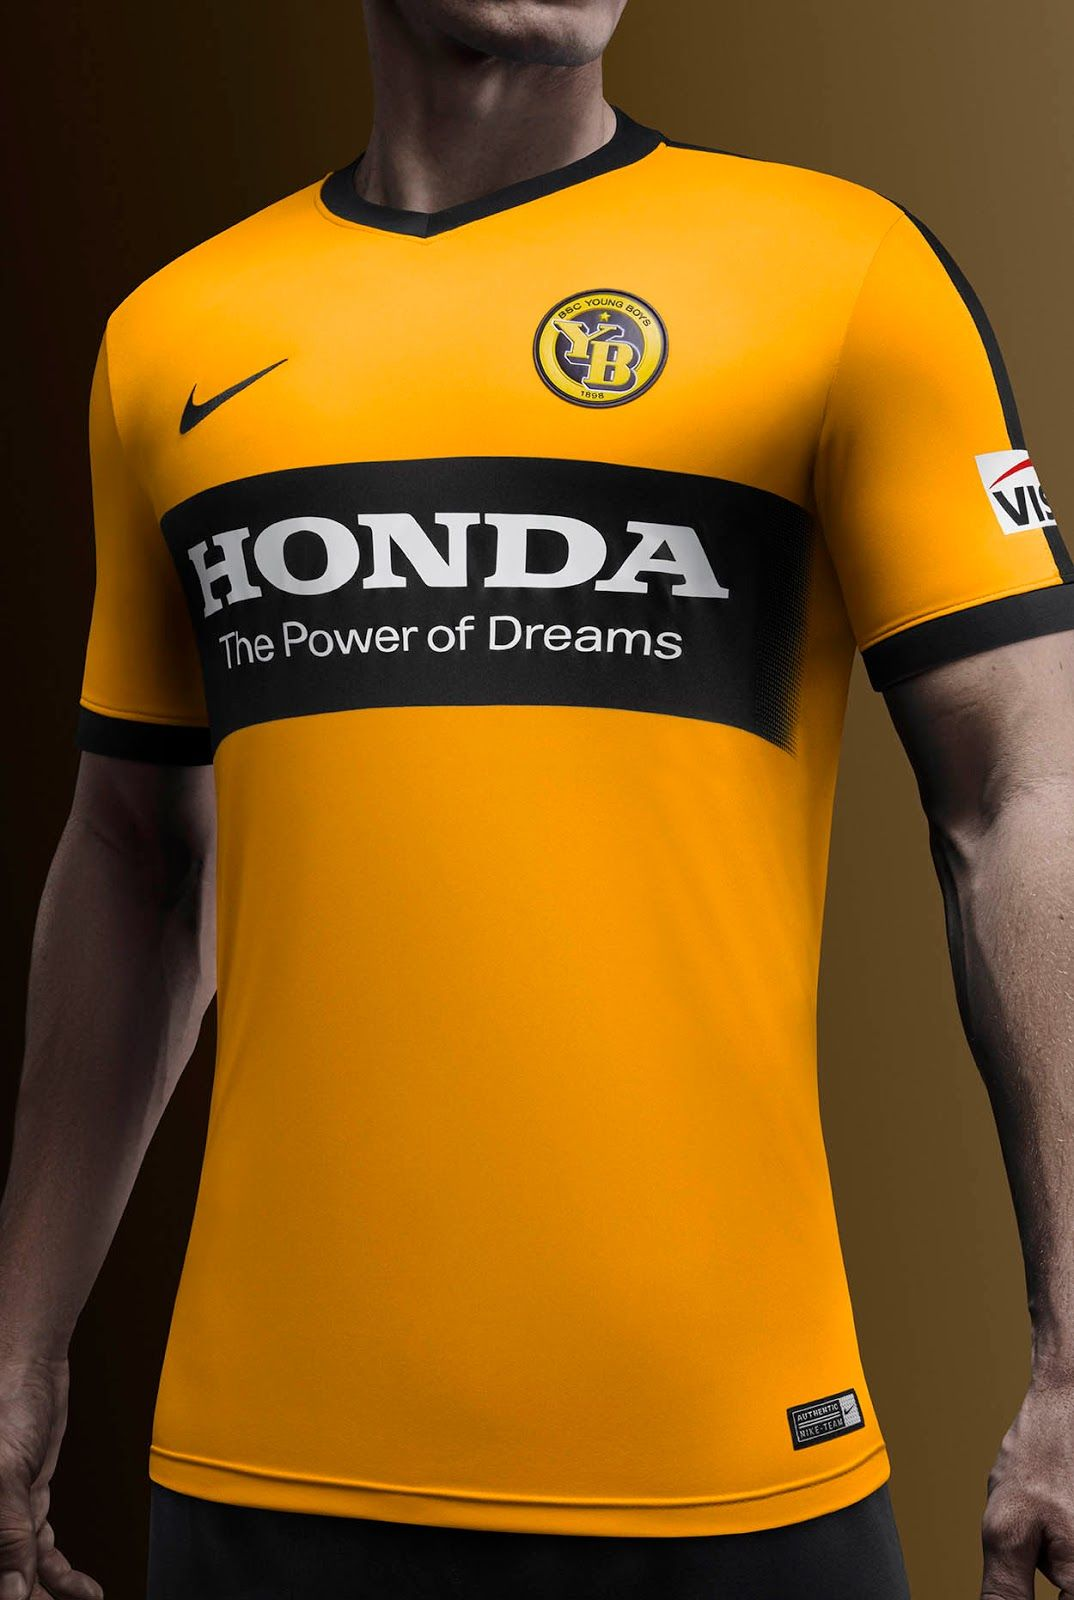 1b1f77b41a944f The Nike BSC Young Boys 16-17 kits introduce stunning designs in yellow